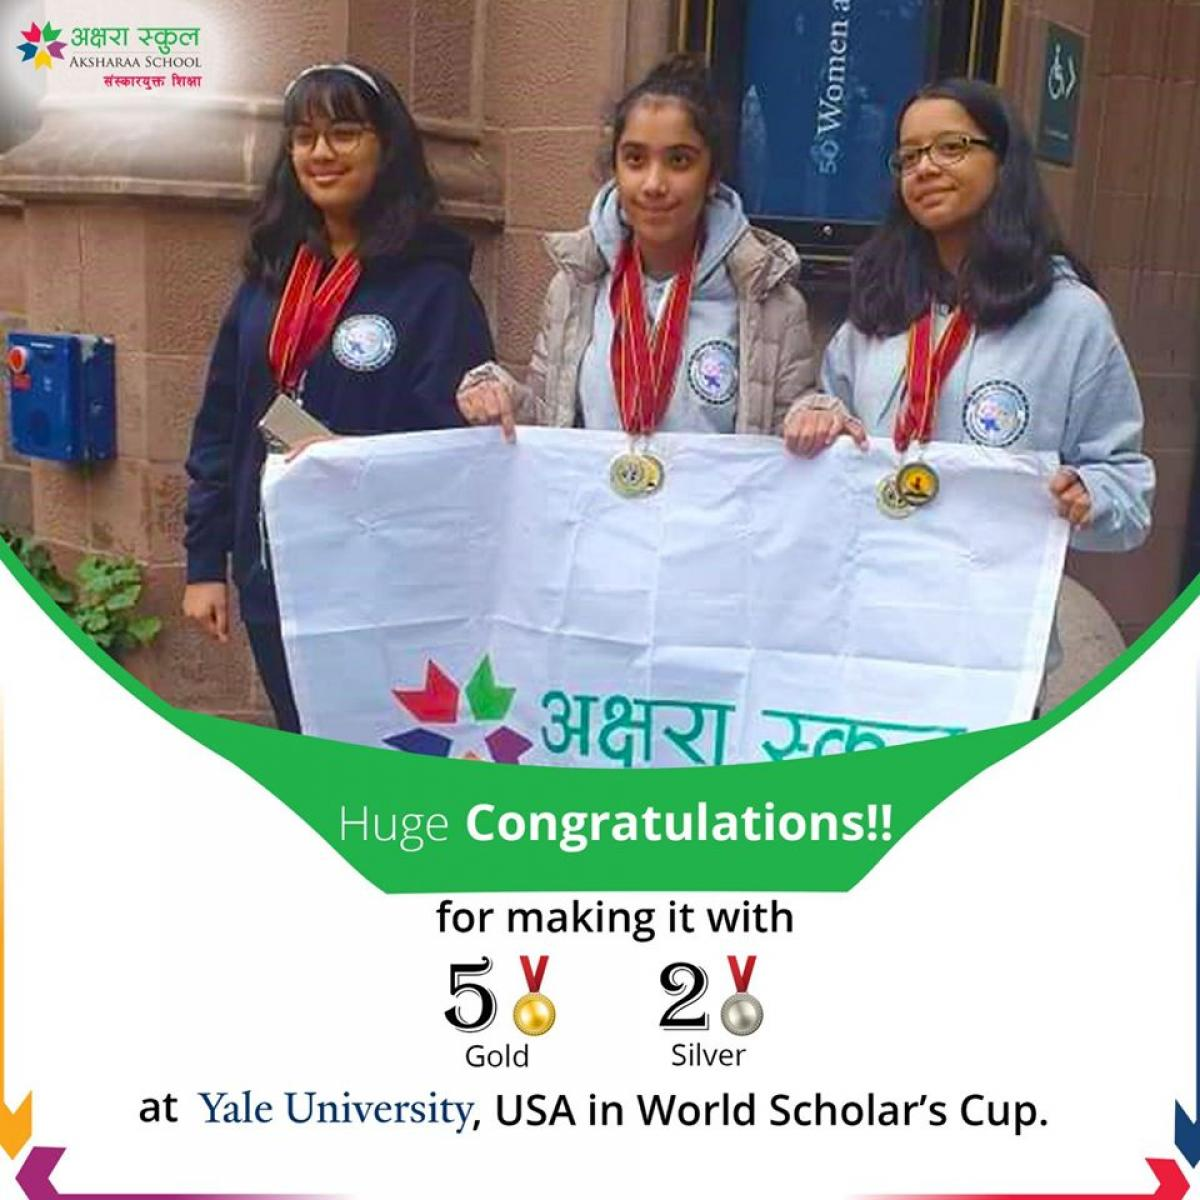 Congratulations for making it with 5 gold & 2 silver at Yale University, the USA in World Scholar's Cup